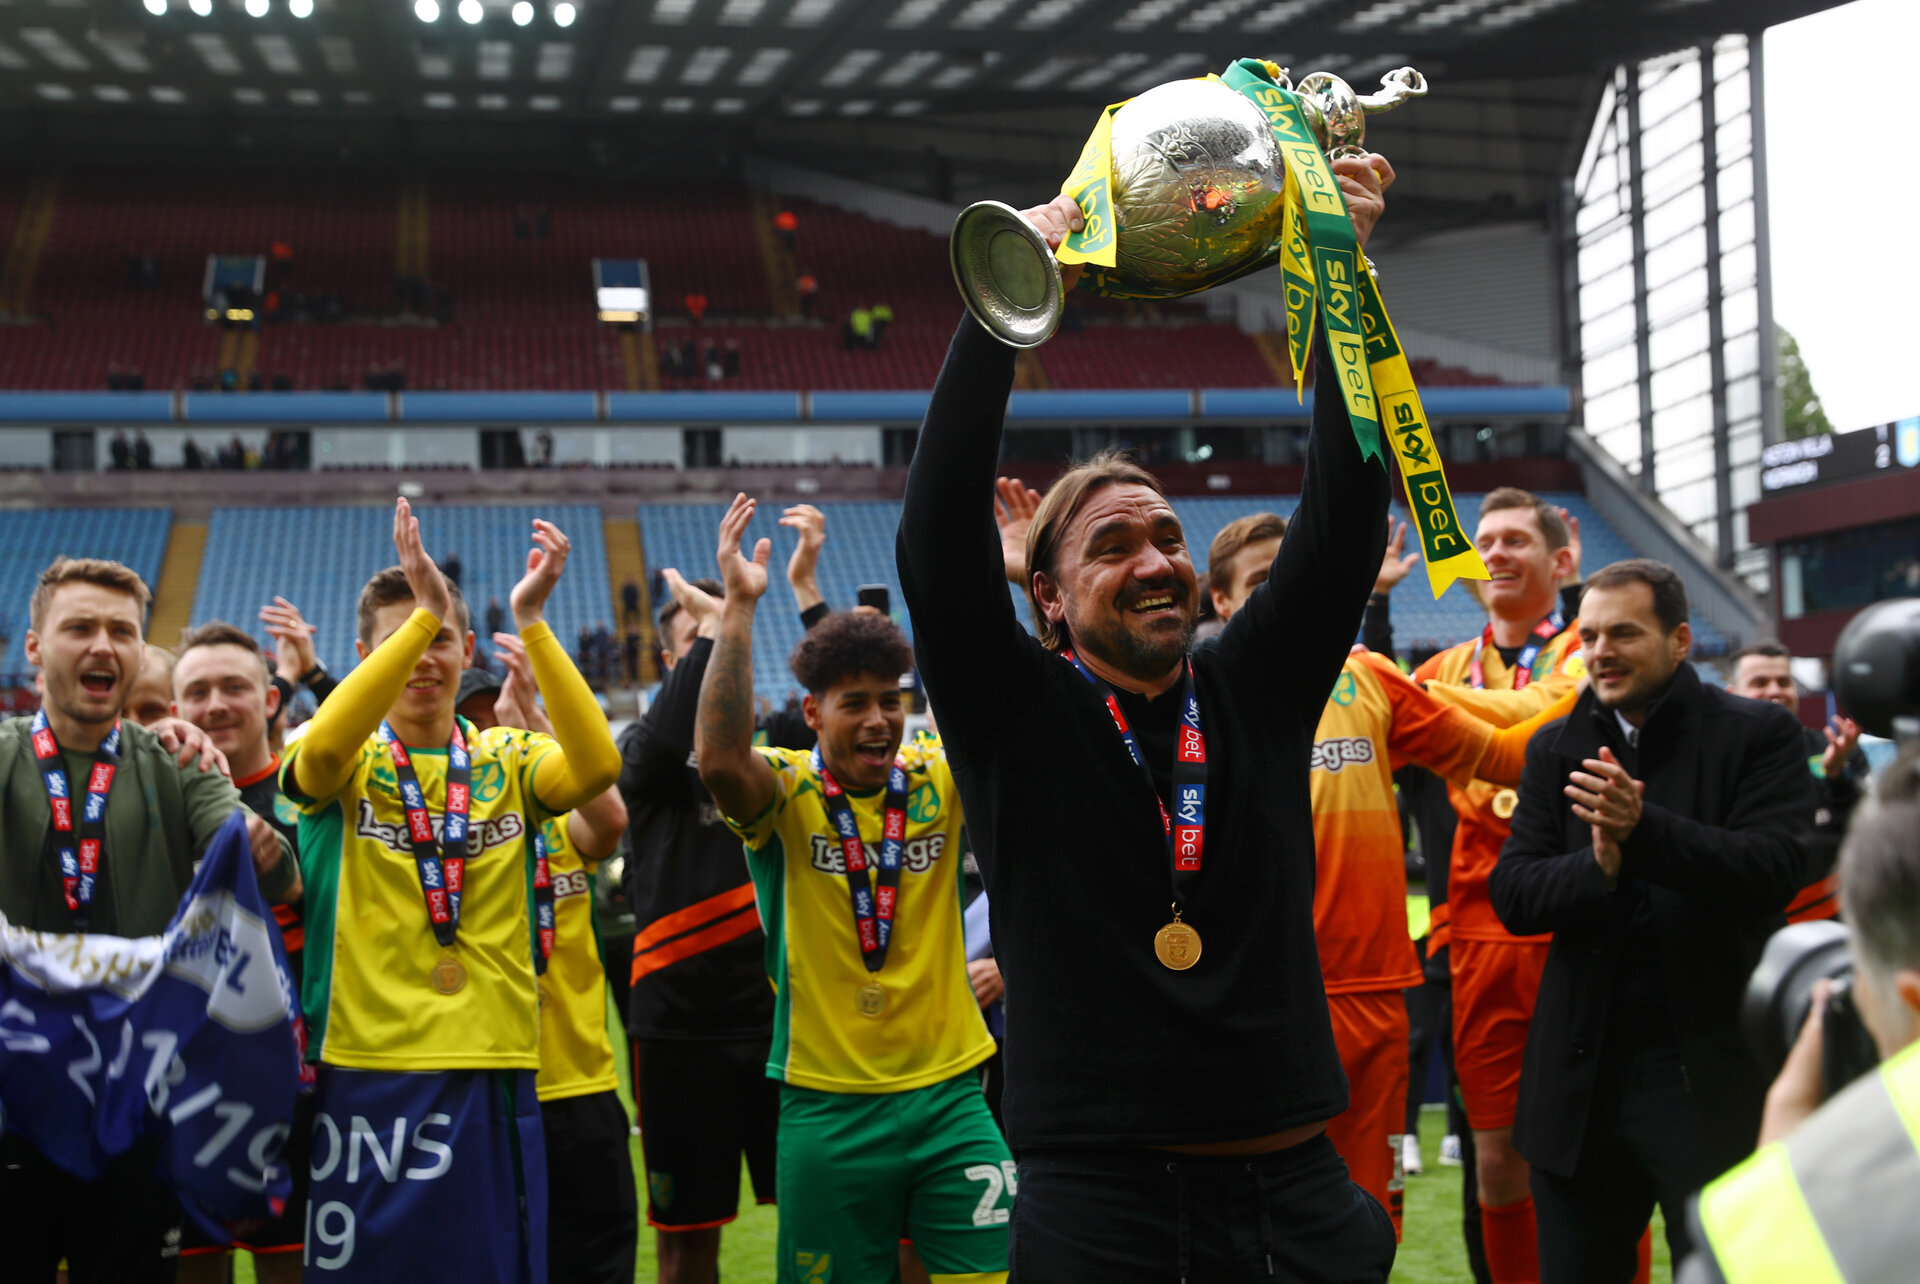 BIRMINGHAM, ENGLAND - MAY 05:  Captain Daniel Farke, Manager of Norwich City lifts the championship trophy in celebration after the Sky Bet Championship match between Aston Villa and Norwich City at Villa Park on May 05, 2019 in Birmingham, England. (Photo by Matthew Lewis/Getty Images)